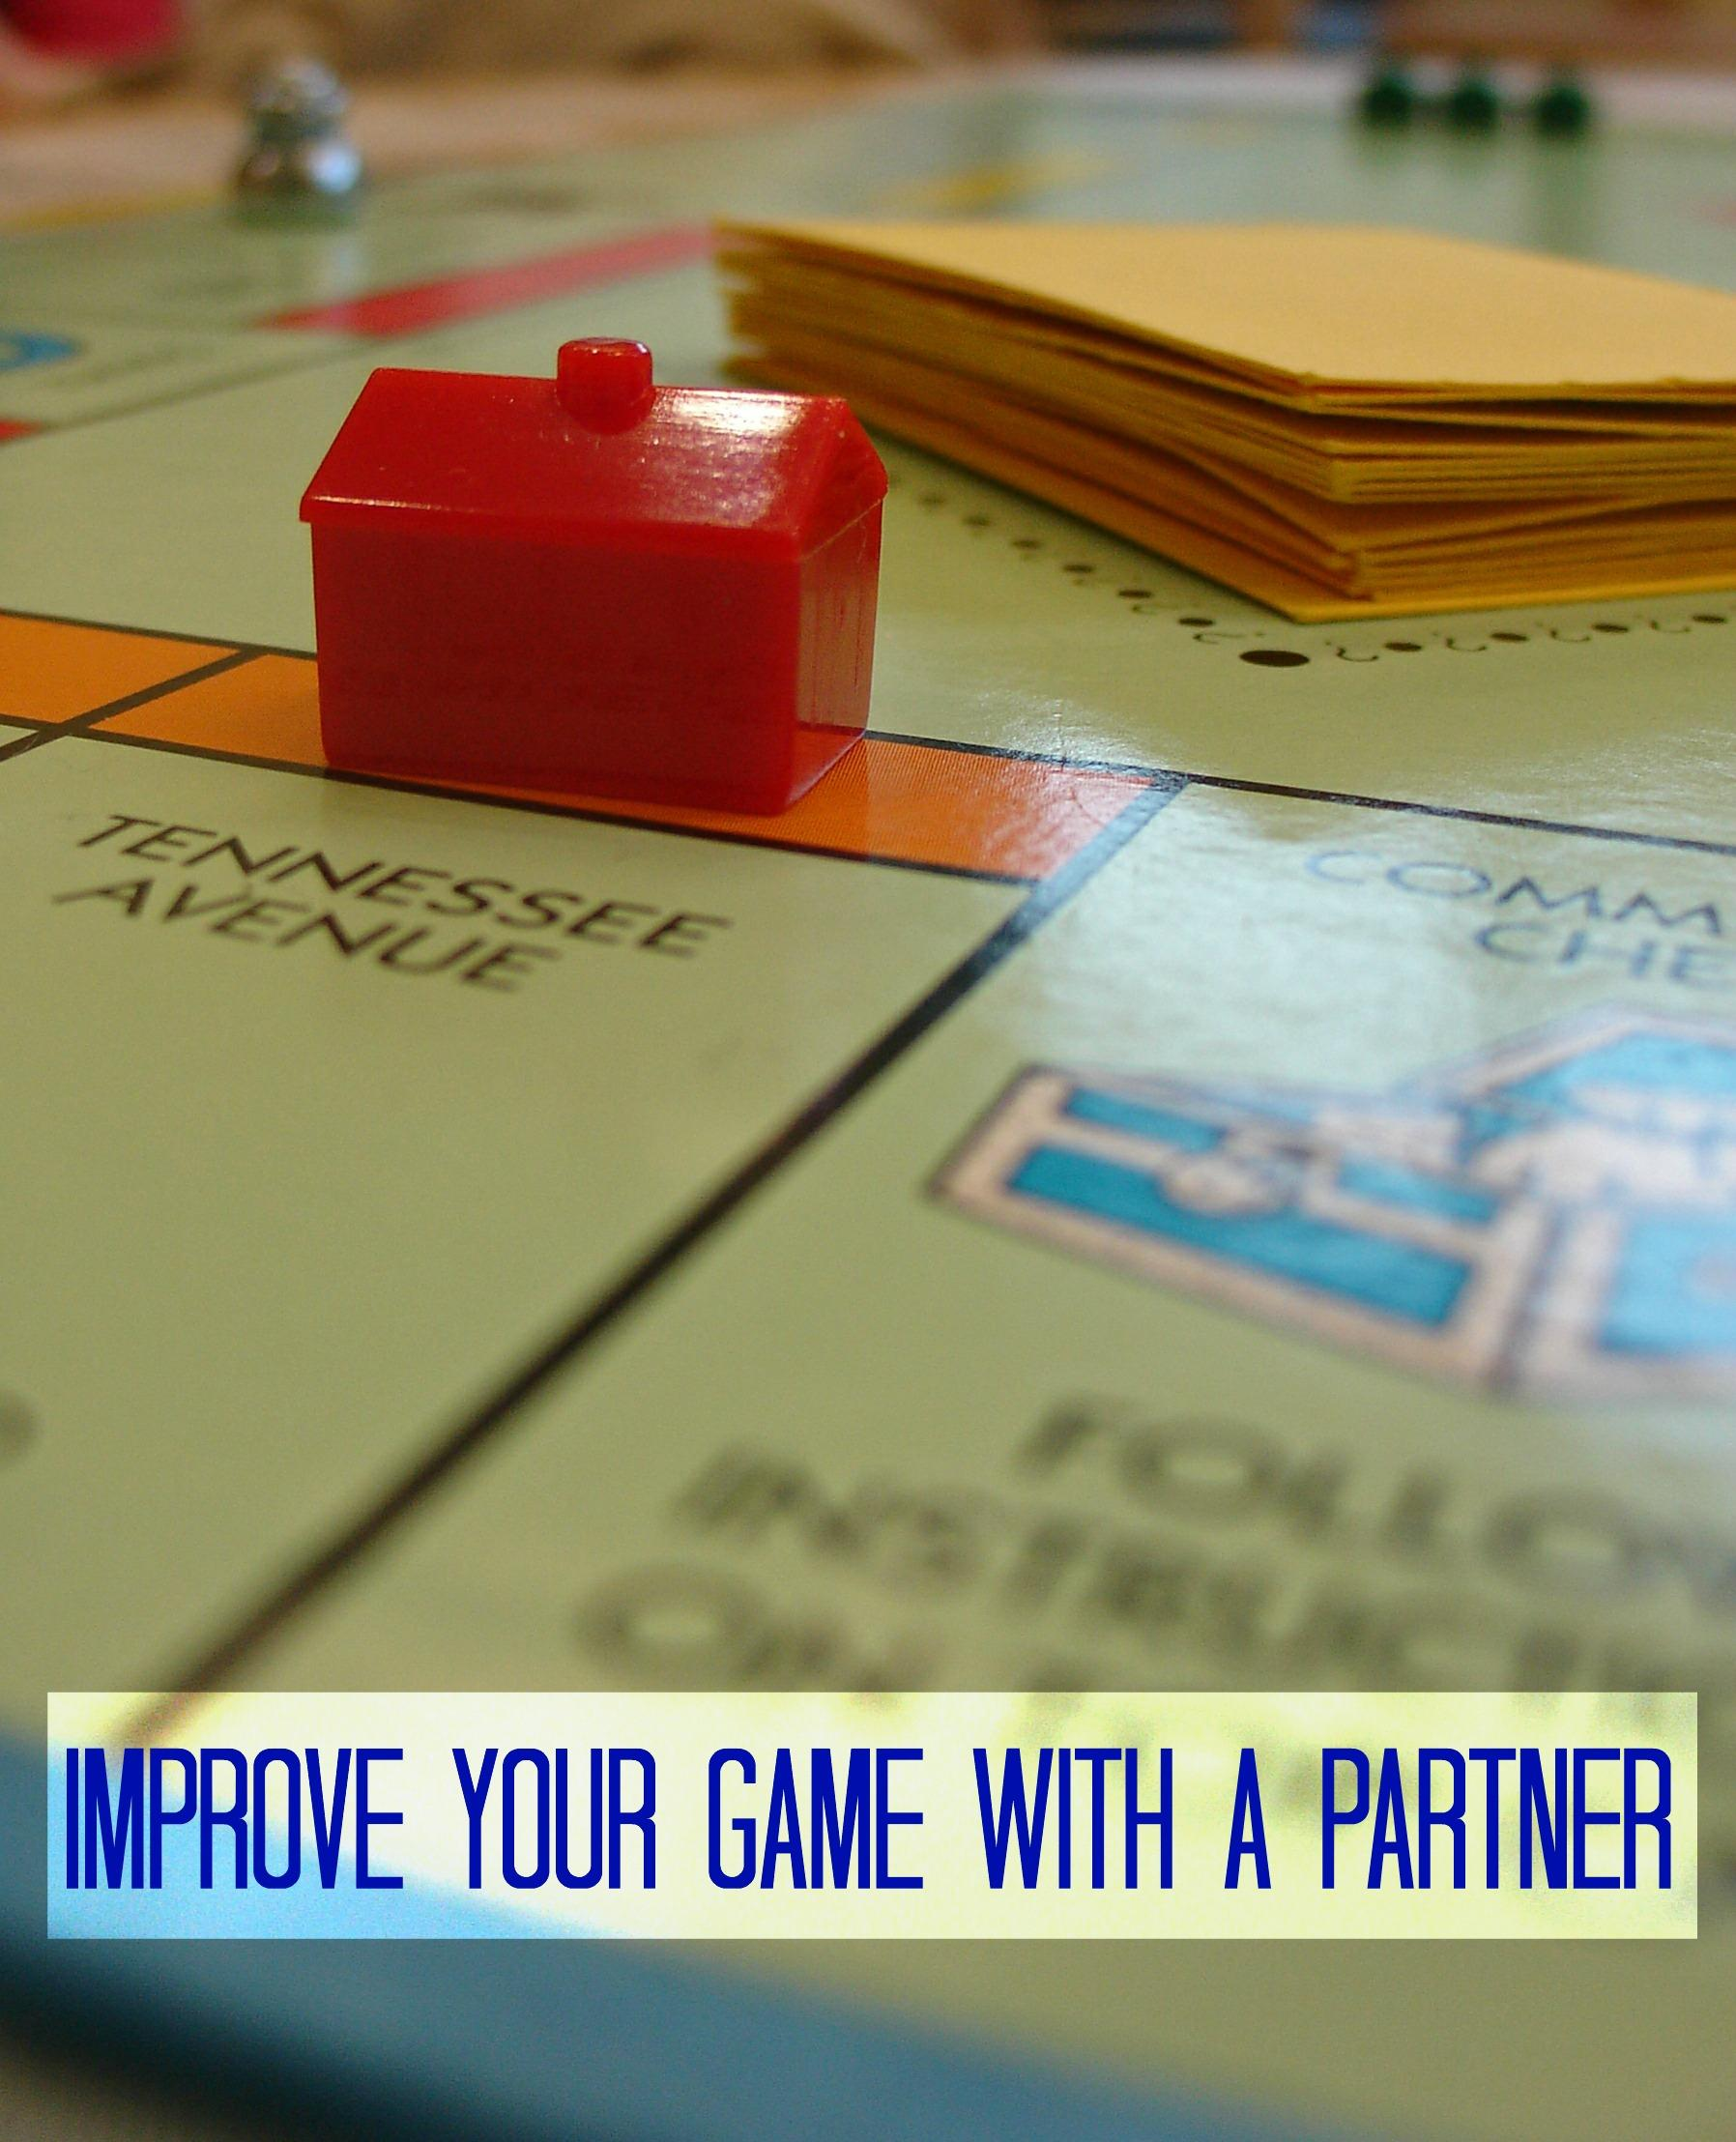 Monopoly Board with Improve Your Game with a partner